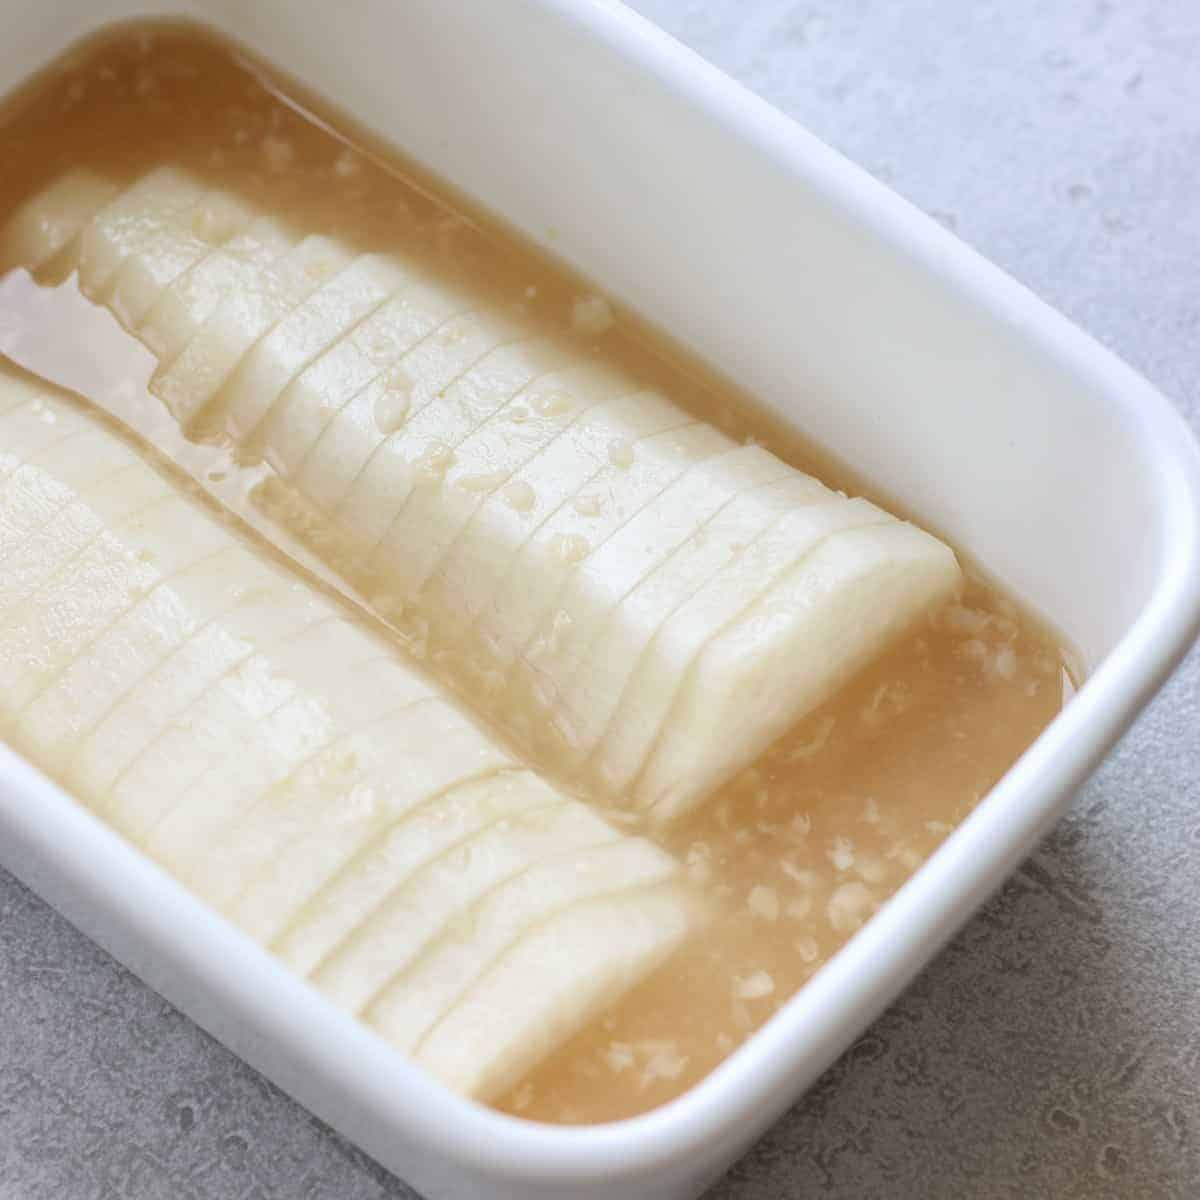 pickled daikon in a white container